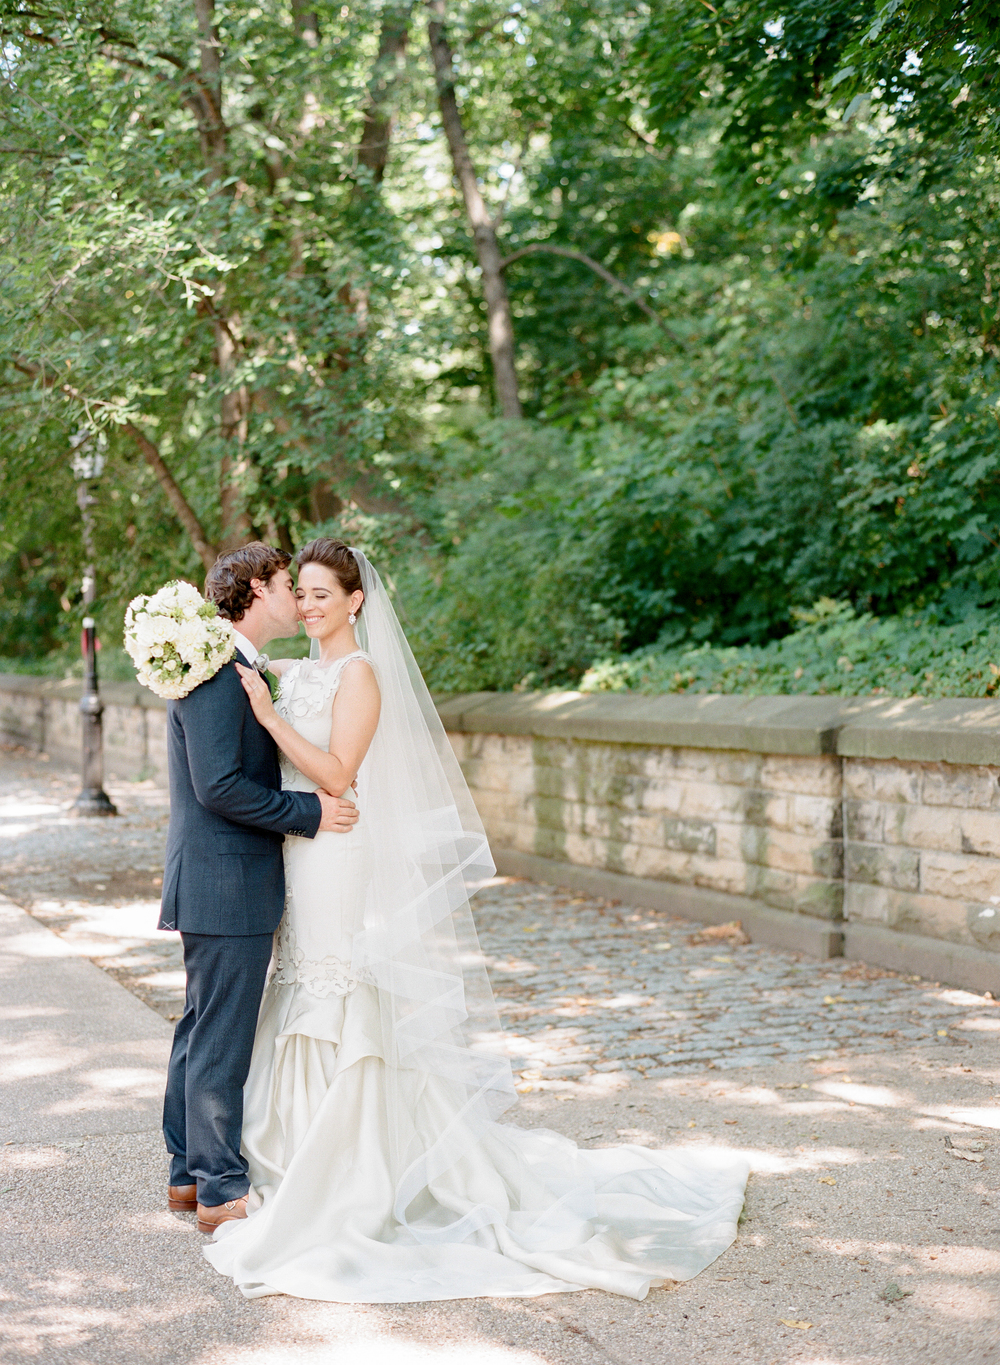 hannah_shih_hanaluluco_cj_isaac_charlie_juliet_ombre_chambray_prospect_park_brooklyn_wedding_14.jpg